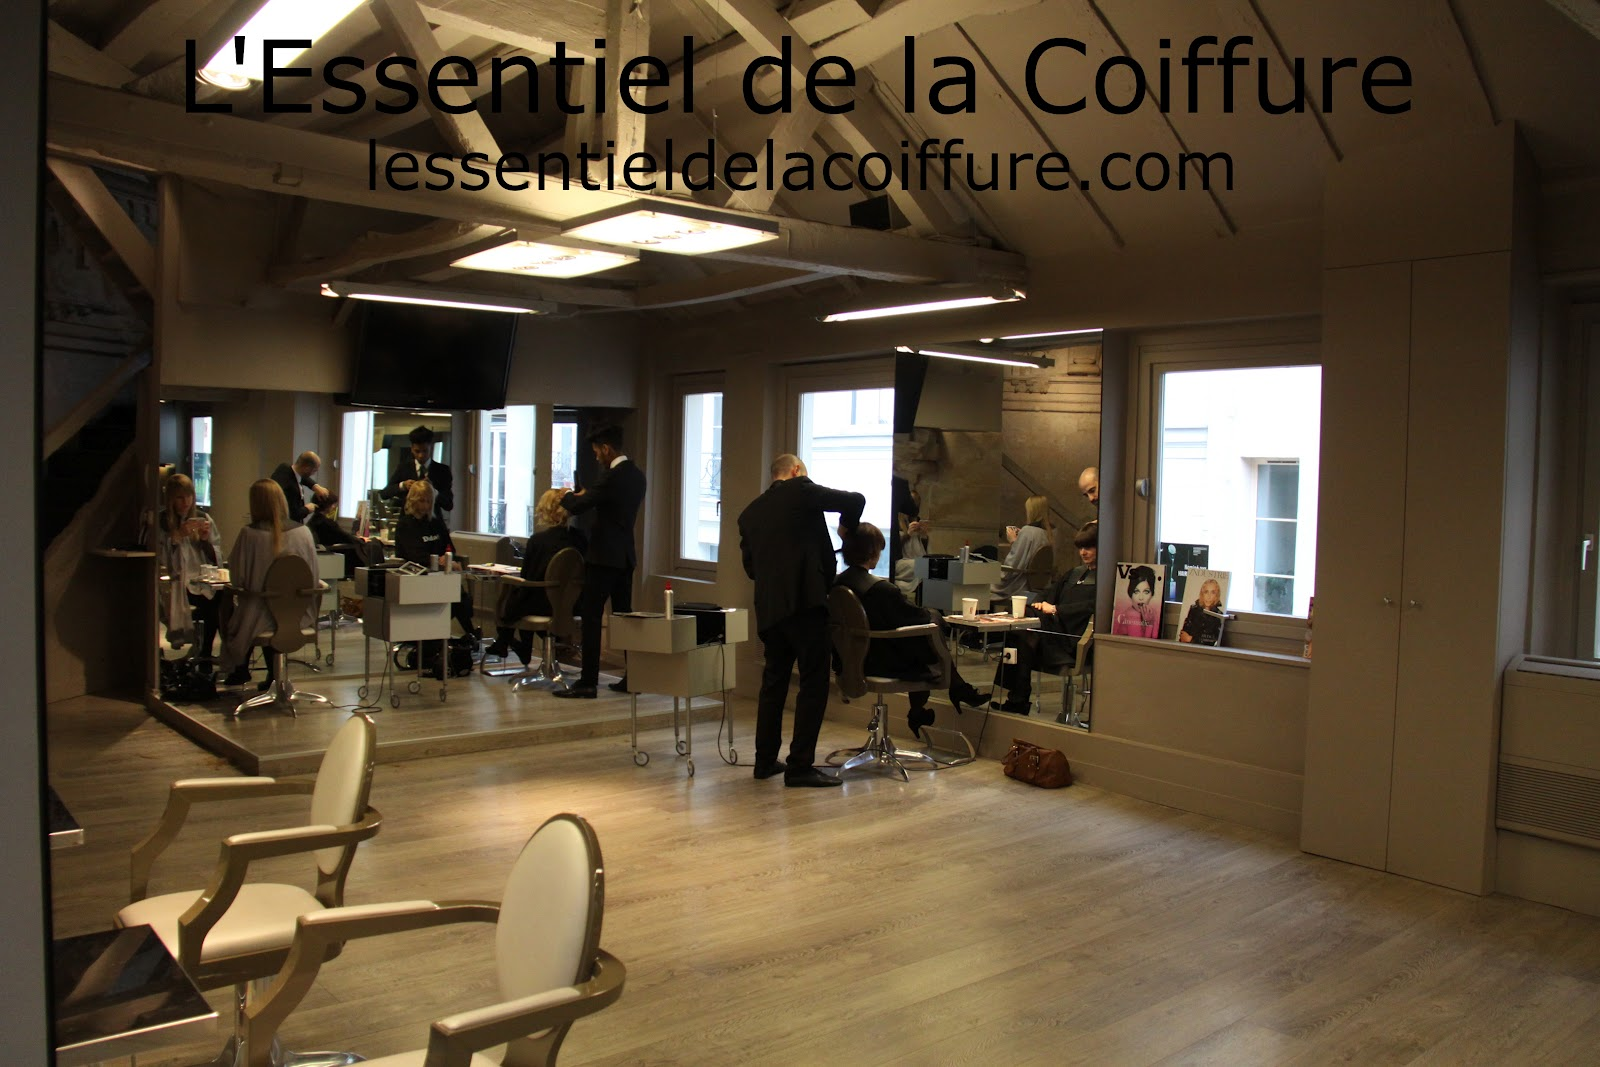 Salon De Massage De Luxe Paris Magasin De Coiffure Paris